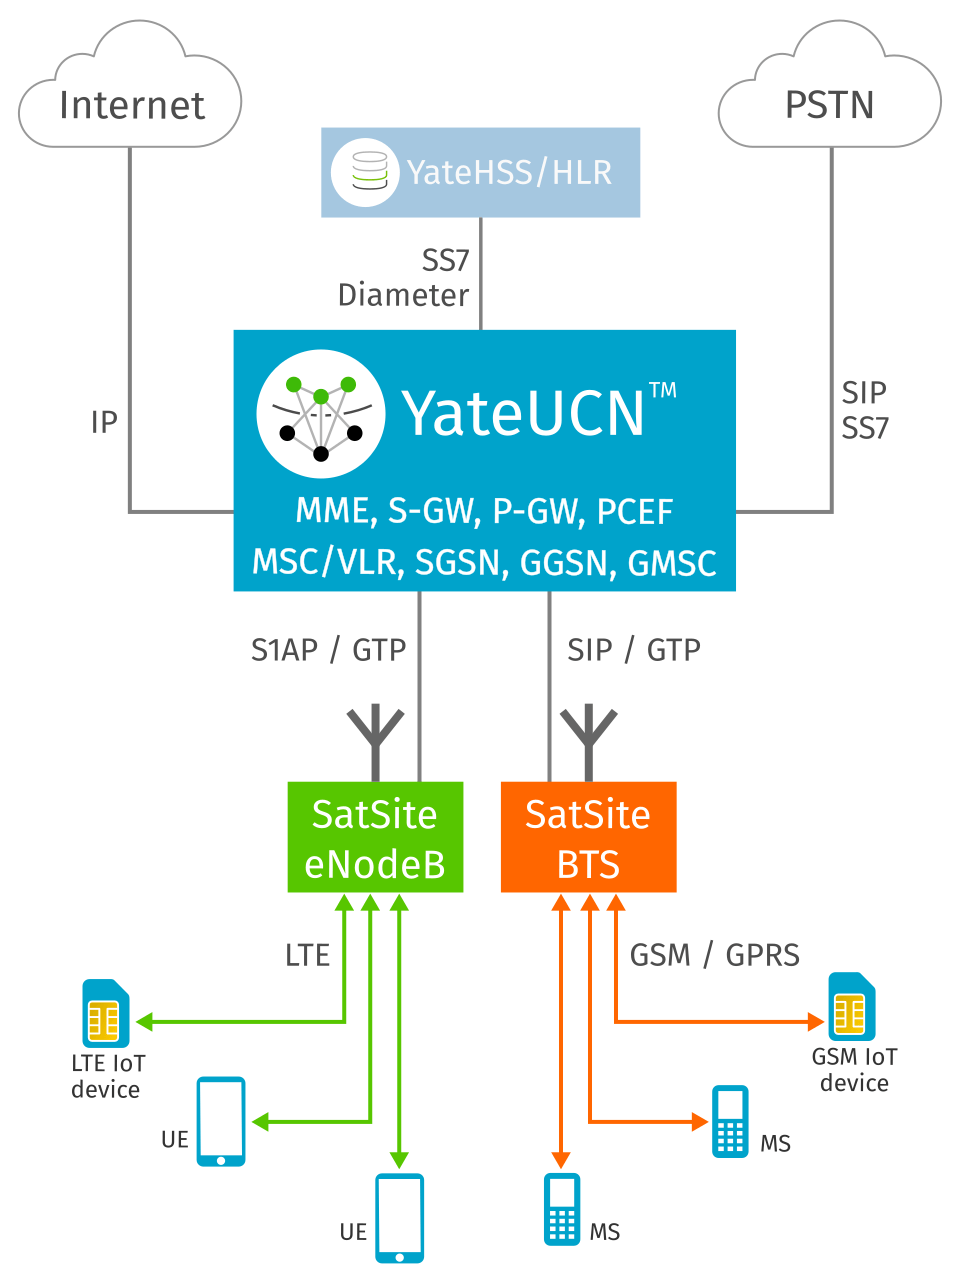 YateUCN - Unified Core Network for EPC/IMS and GSM/GPRS